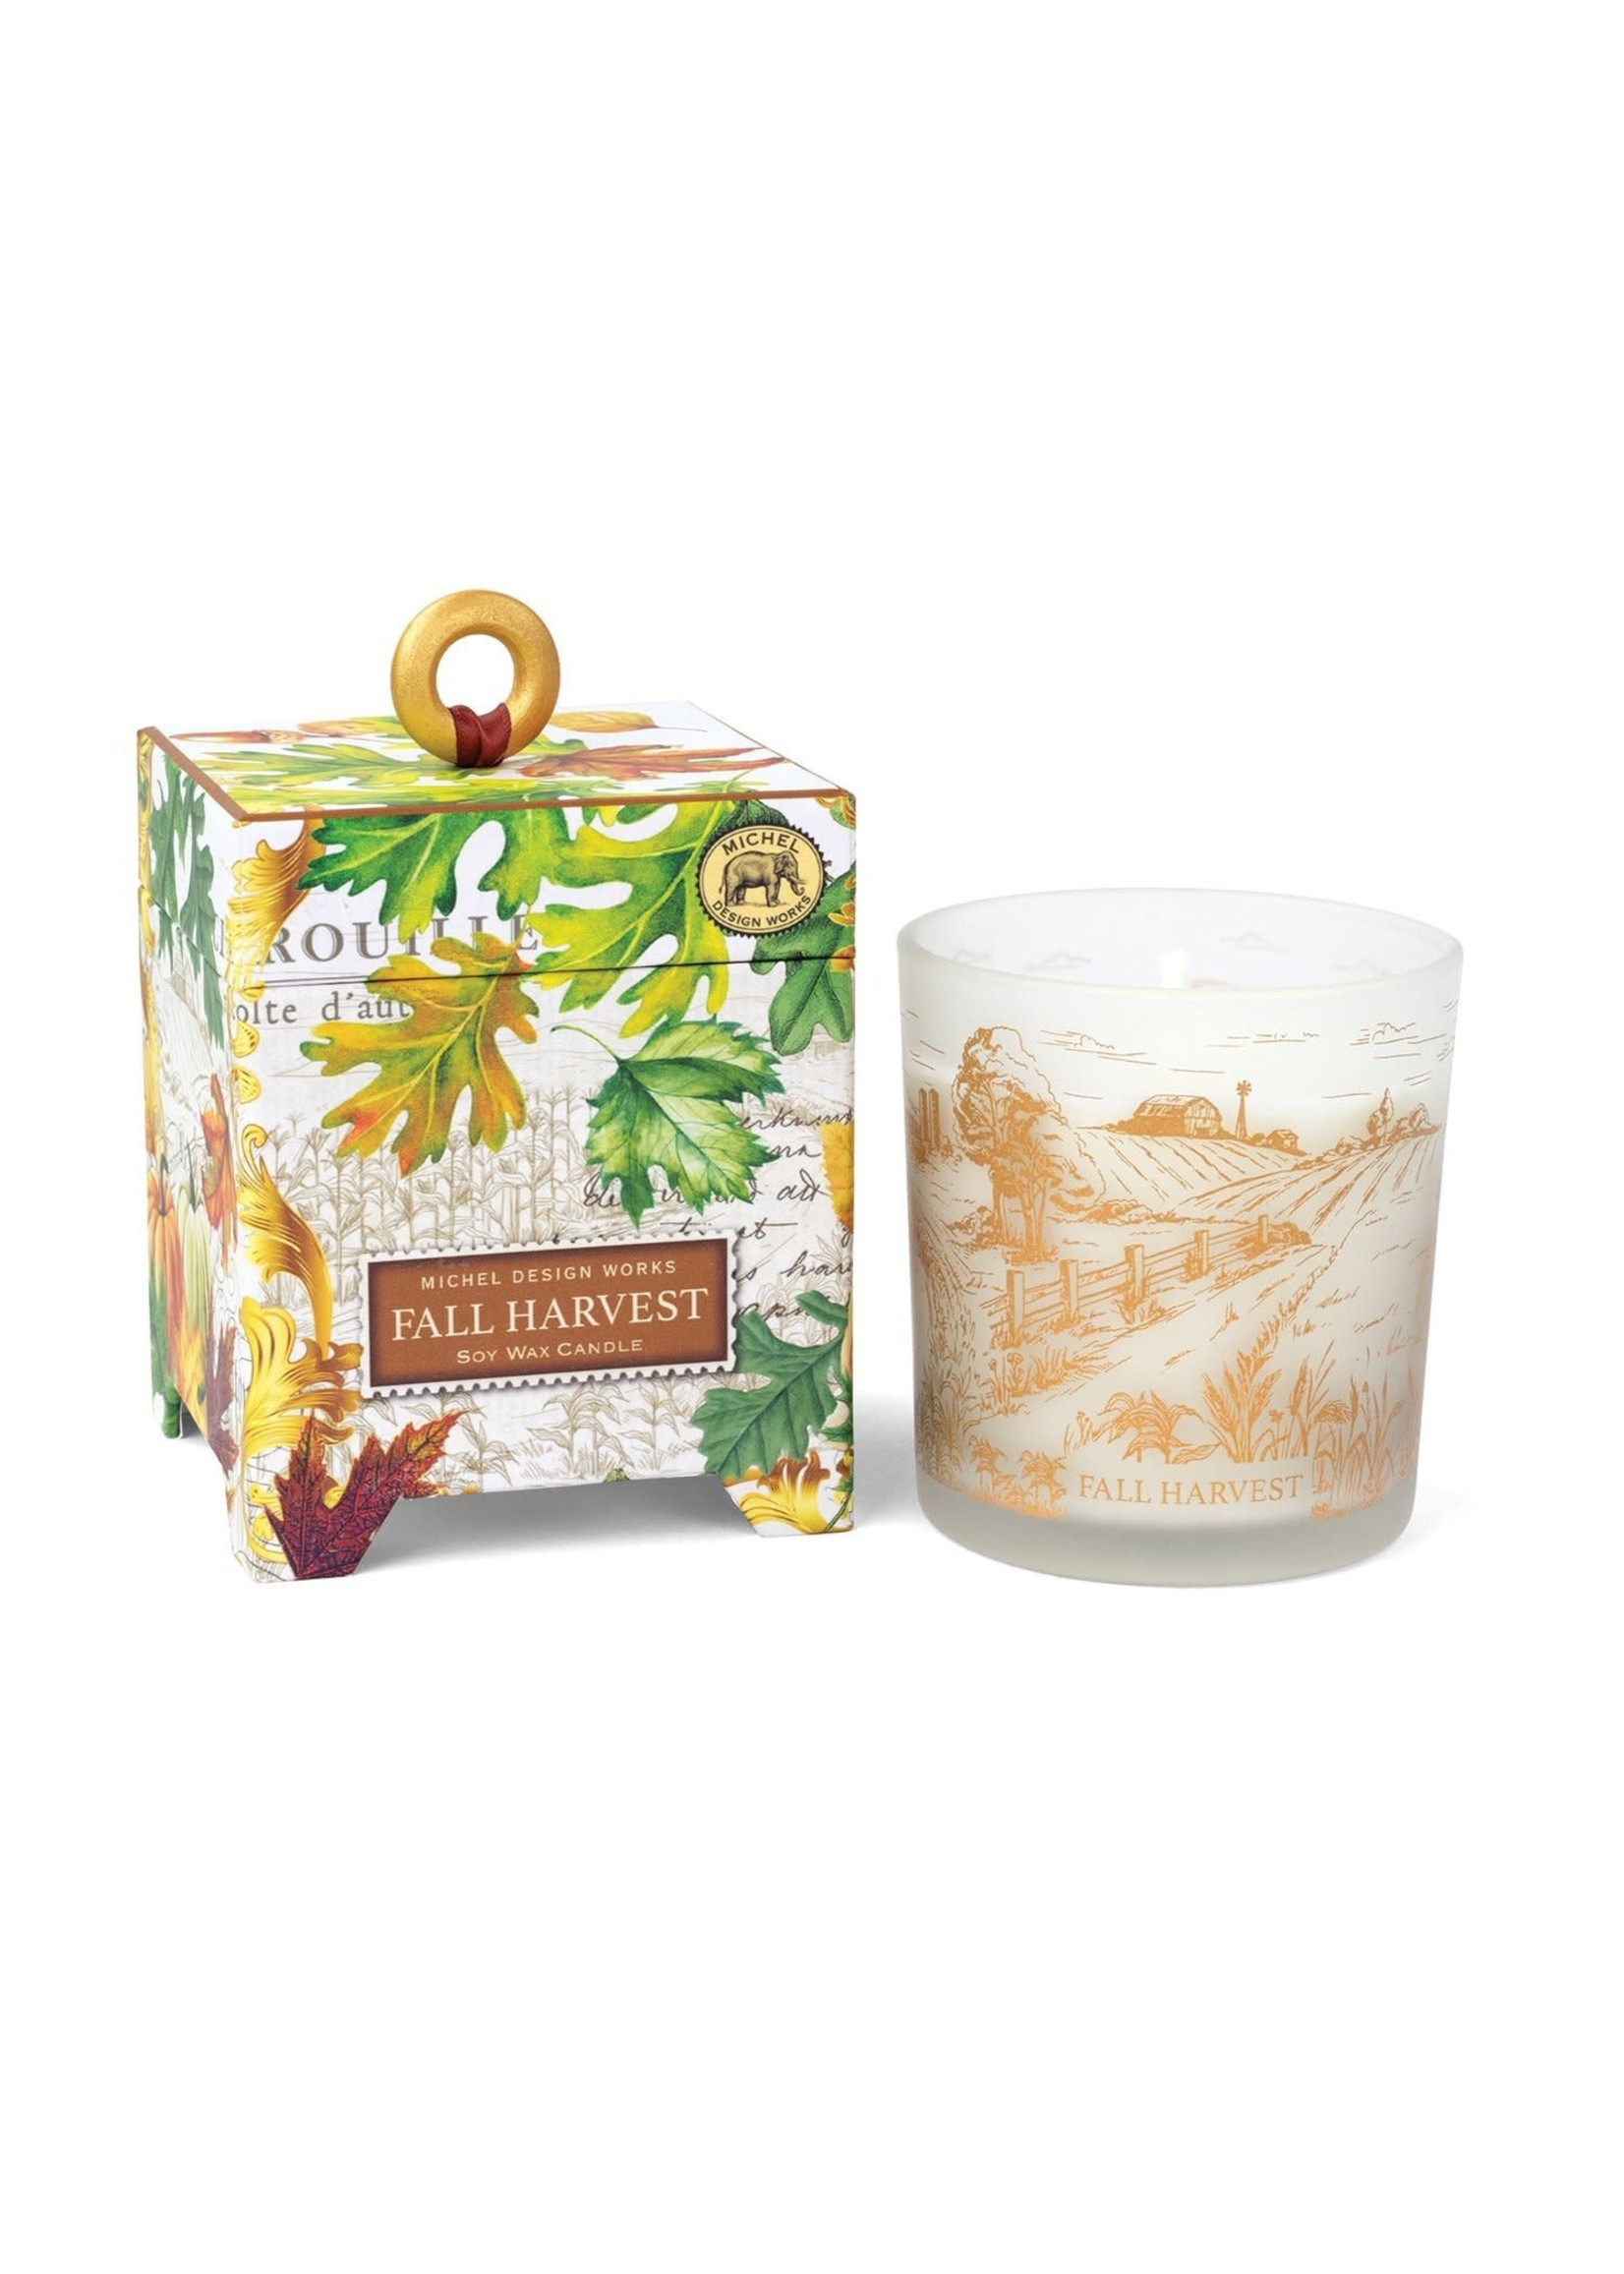 FALL HARVEST6.5OZ SOY CANDLE